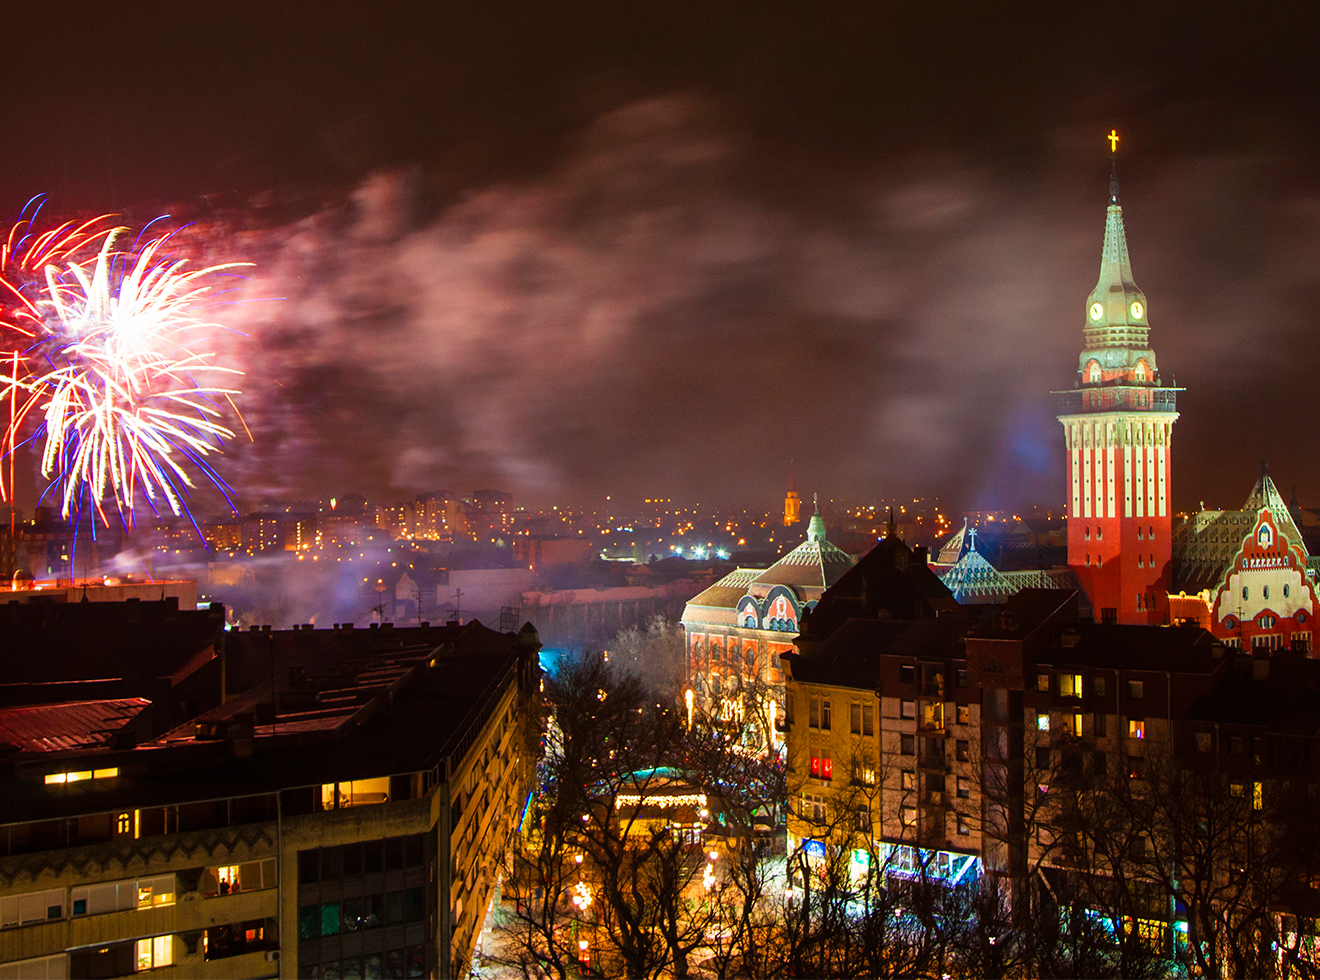 Fireworks celebrating New Year in Subotica, Serbia